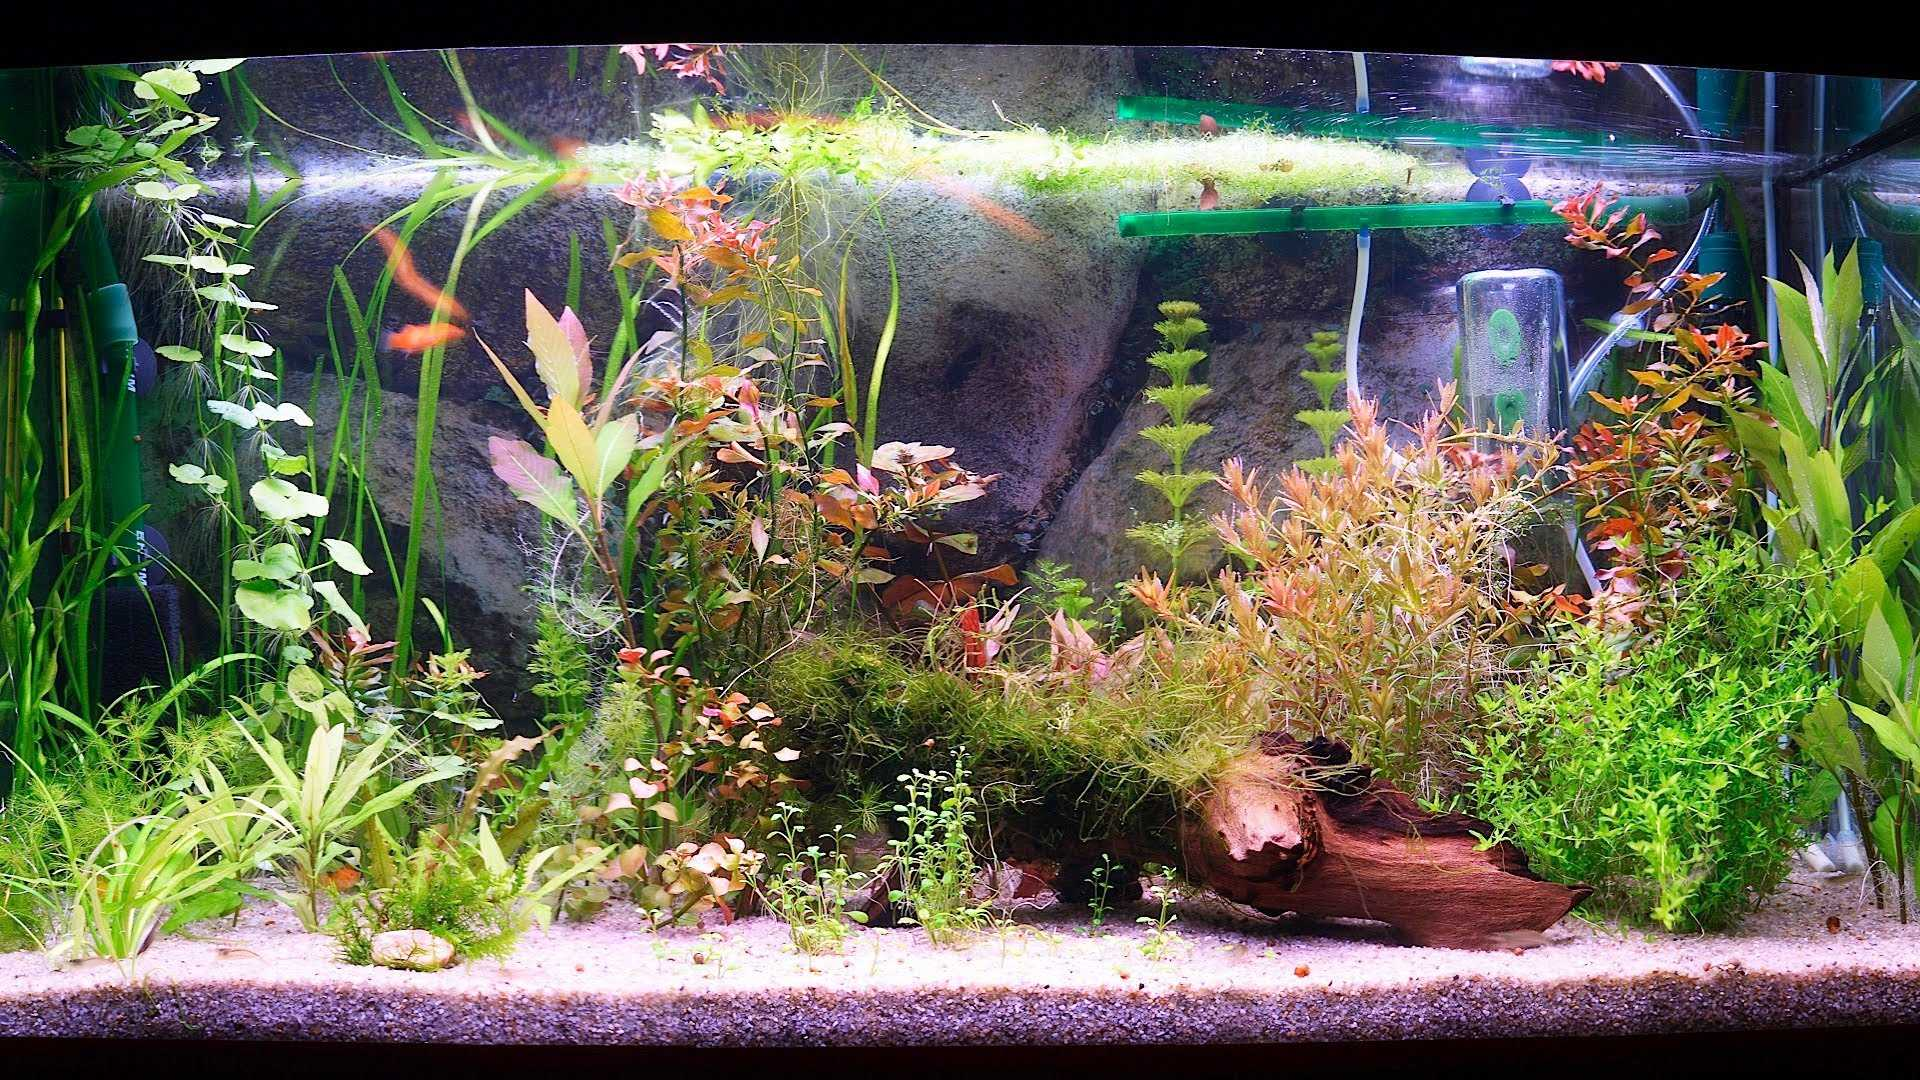 Top 5 petsmart fish tank filter types pros cons comparison for Fish tank water filter